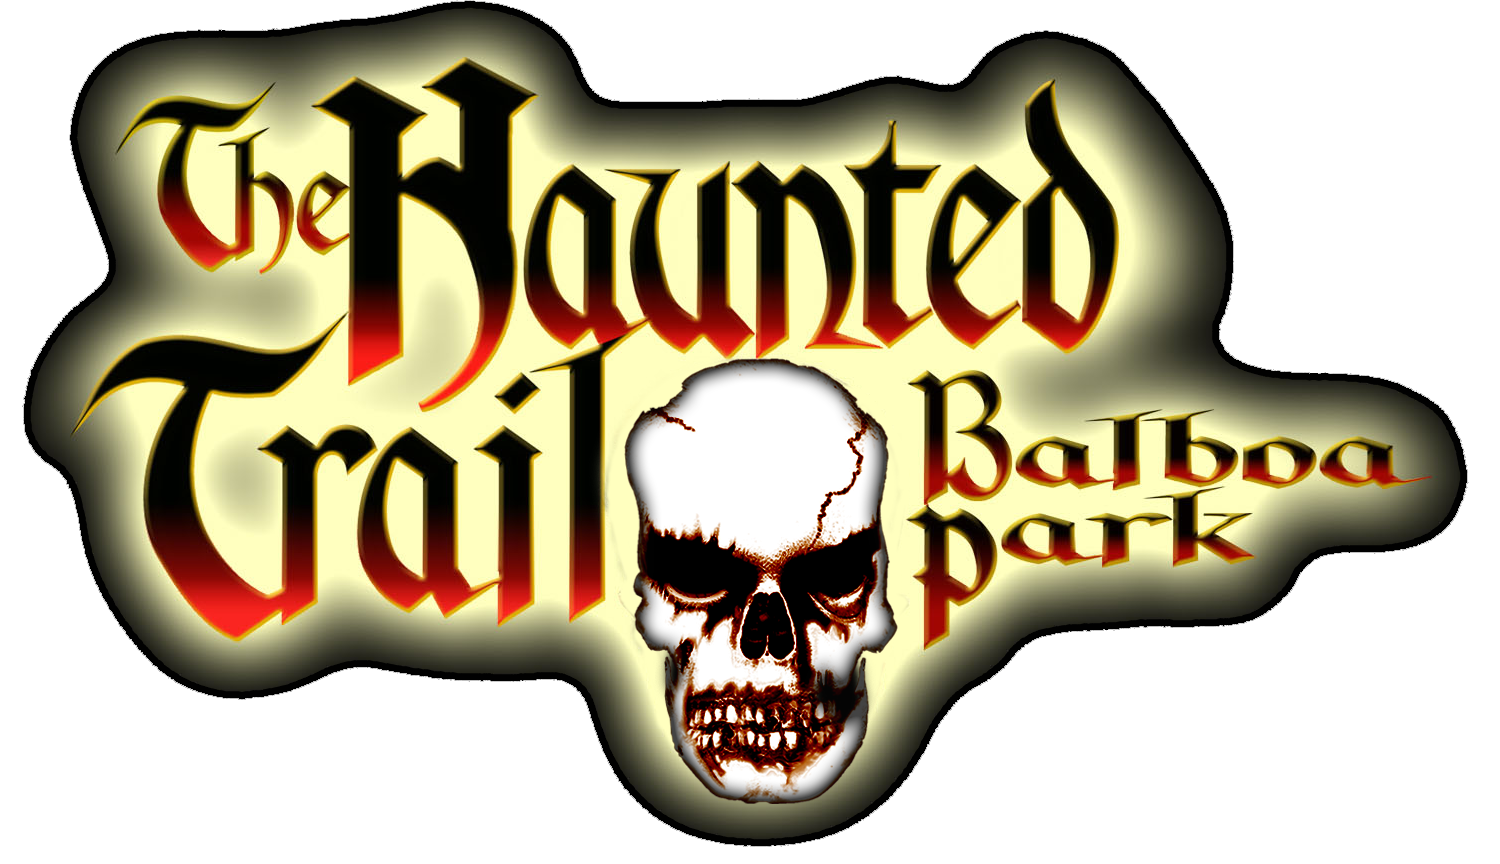 Gate clipart haunted. Frequently asked questions faq